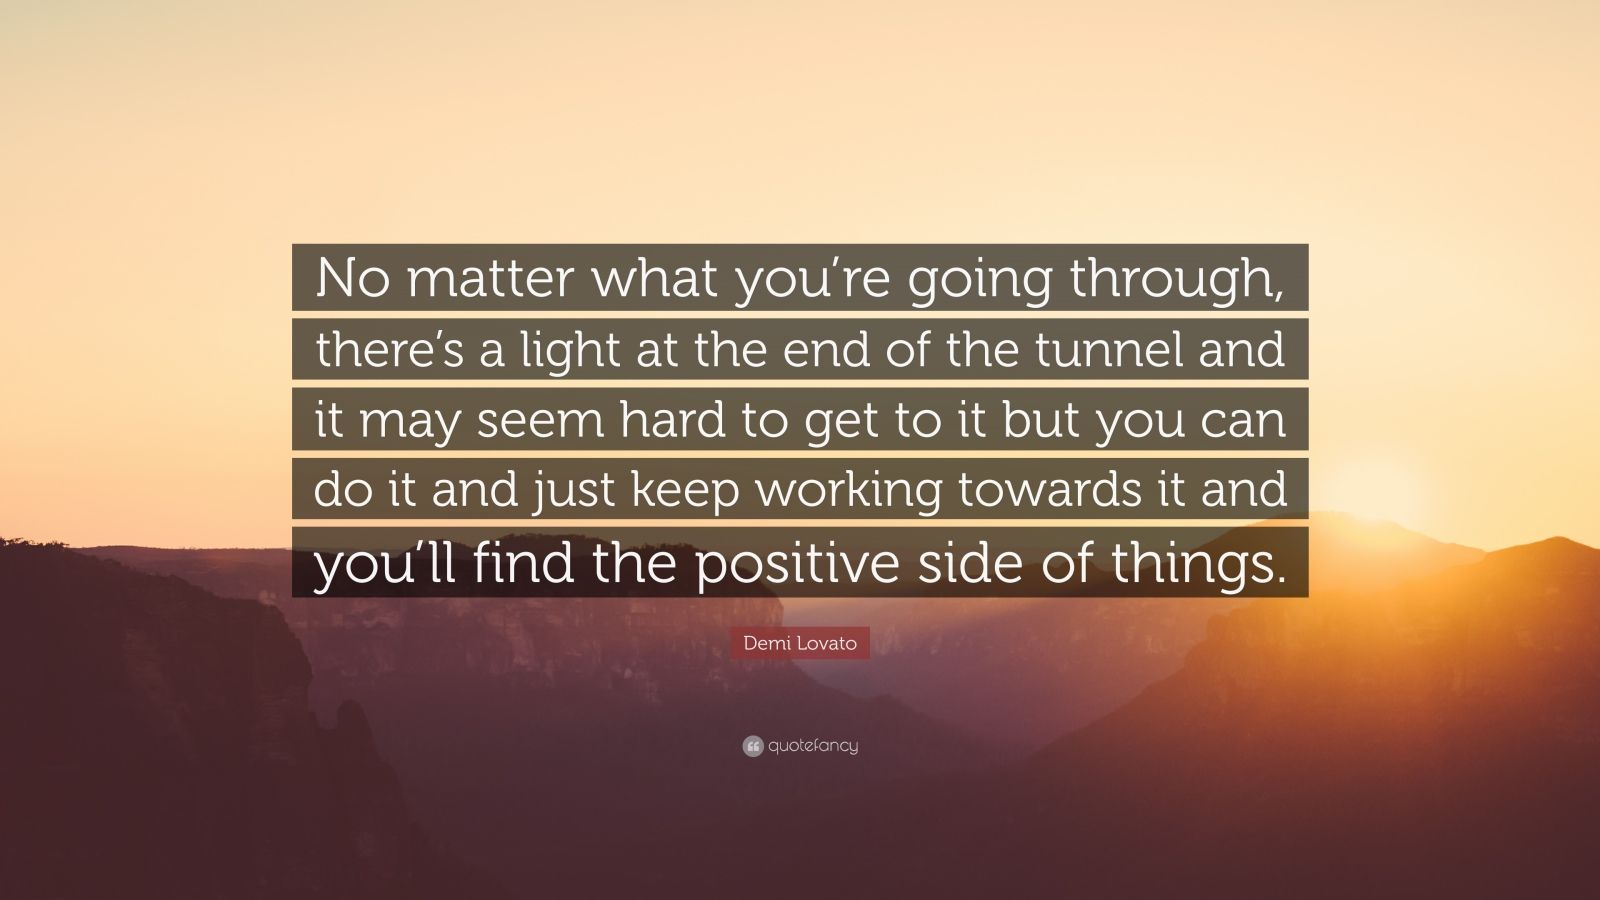 "Demi Lovato Quote: ""No matter what you're going through, there's a light at the end of the tunnel and it may seem hard to get to it but you can do it and just keep working towards it and you'll find the positive side of things."""